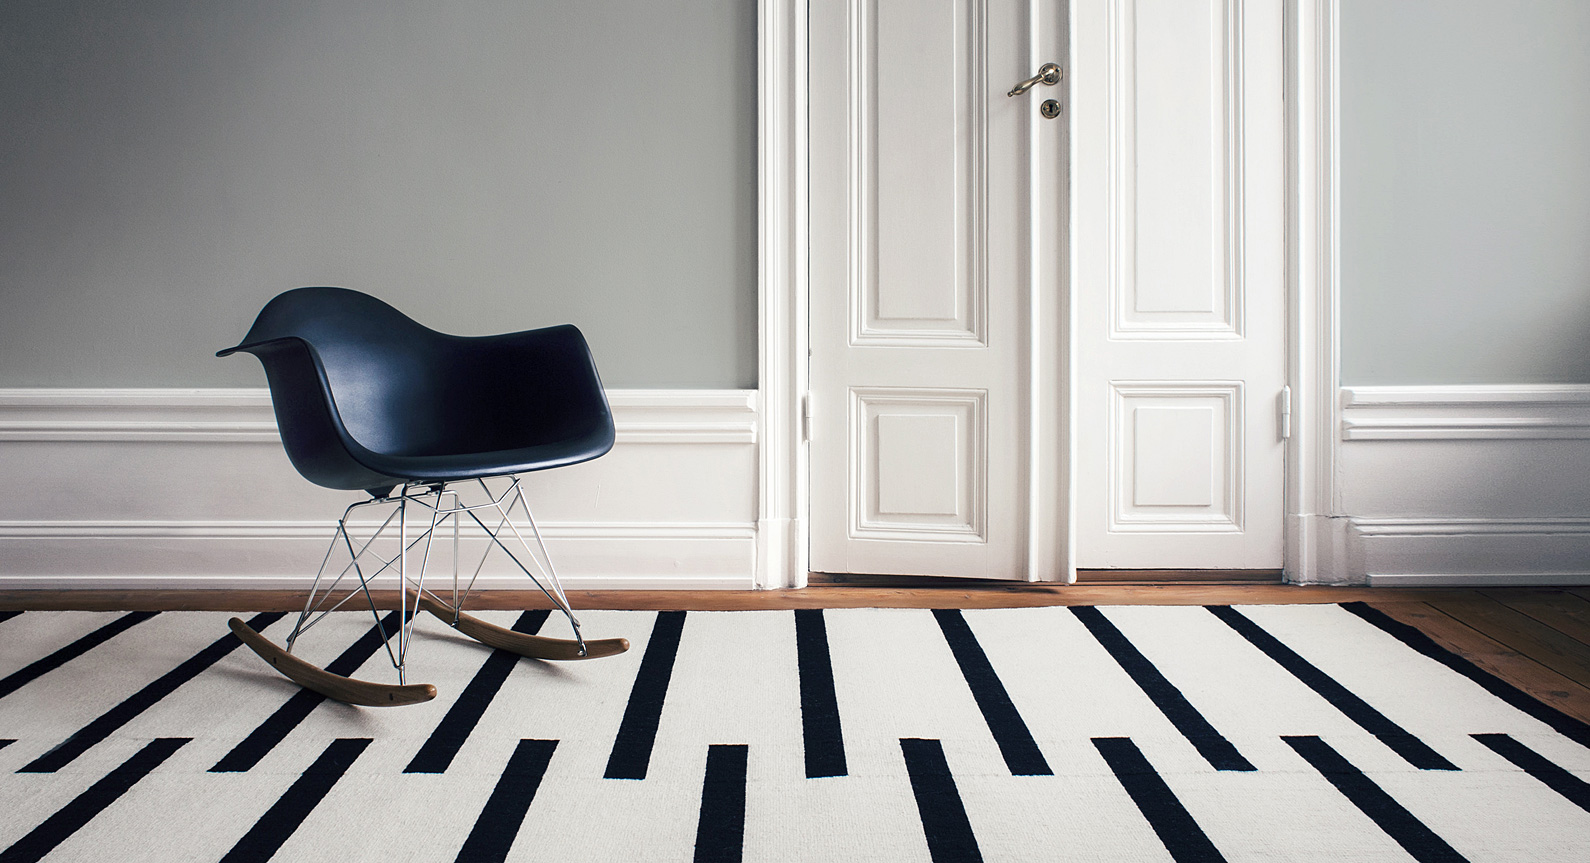 Home Comforts: Introducing The Scandi-Inspired Rugs Of Nordic Knots